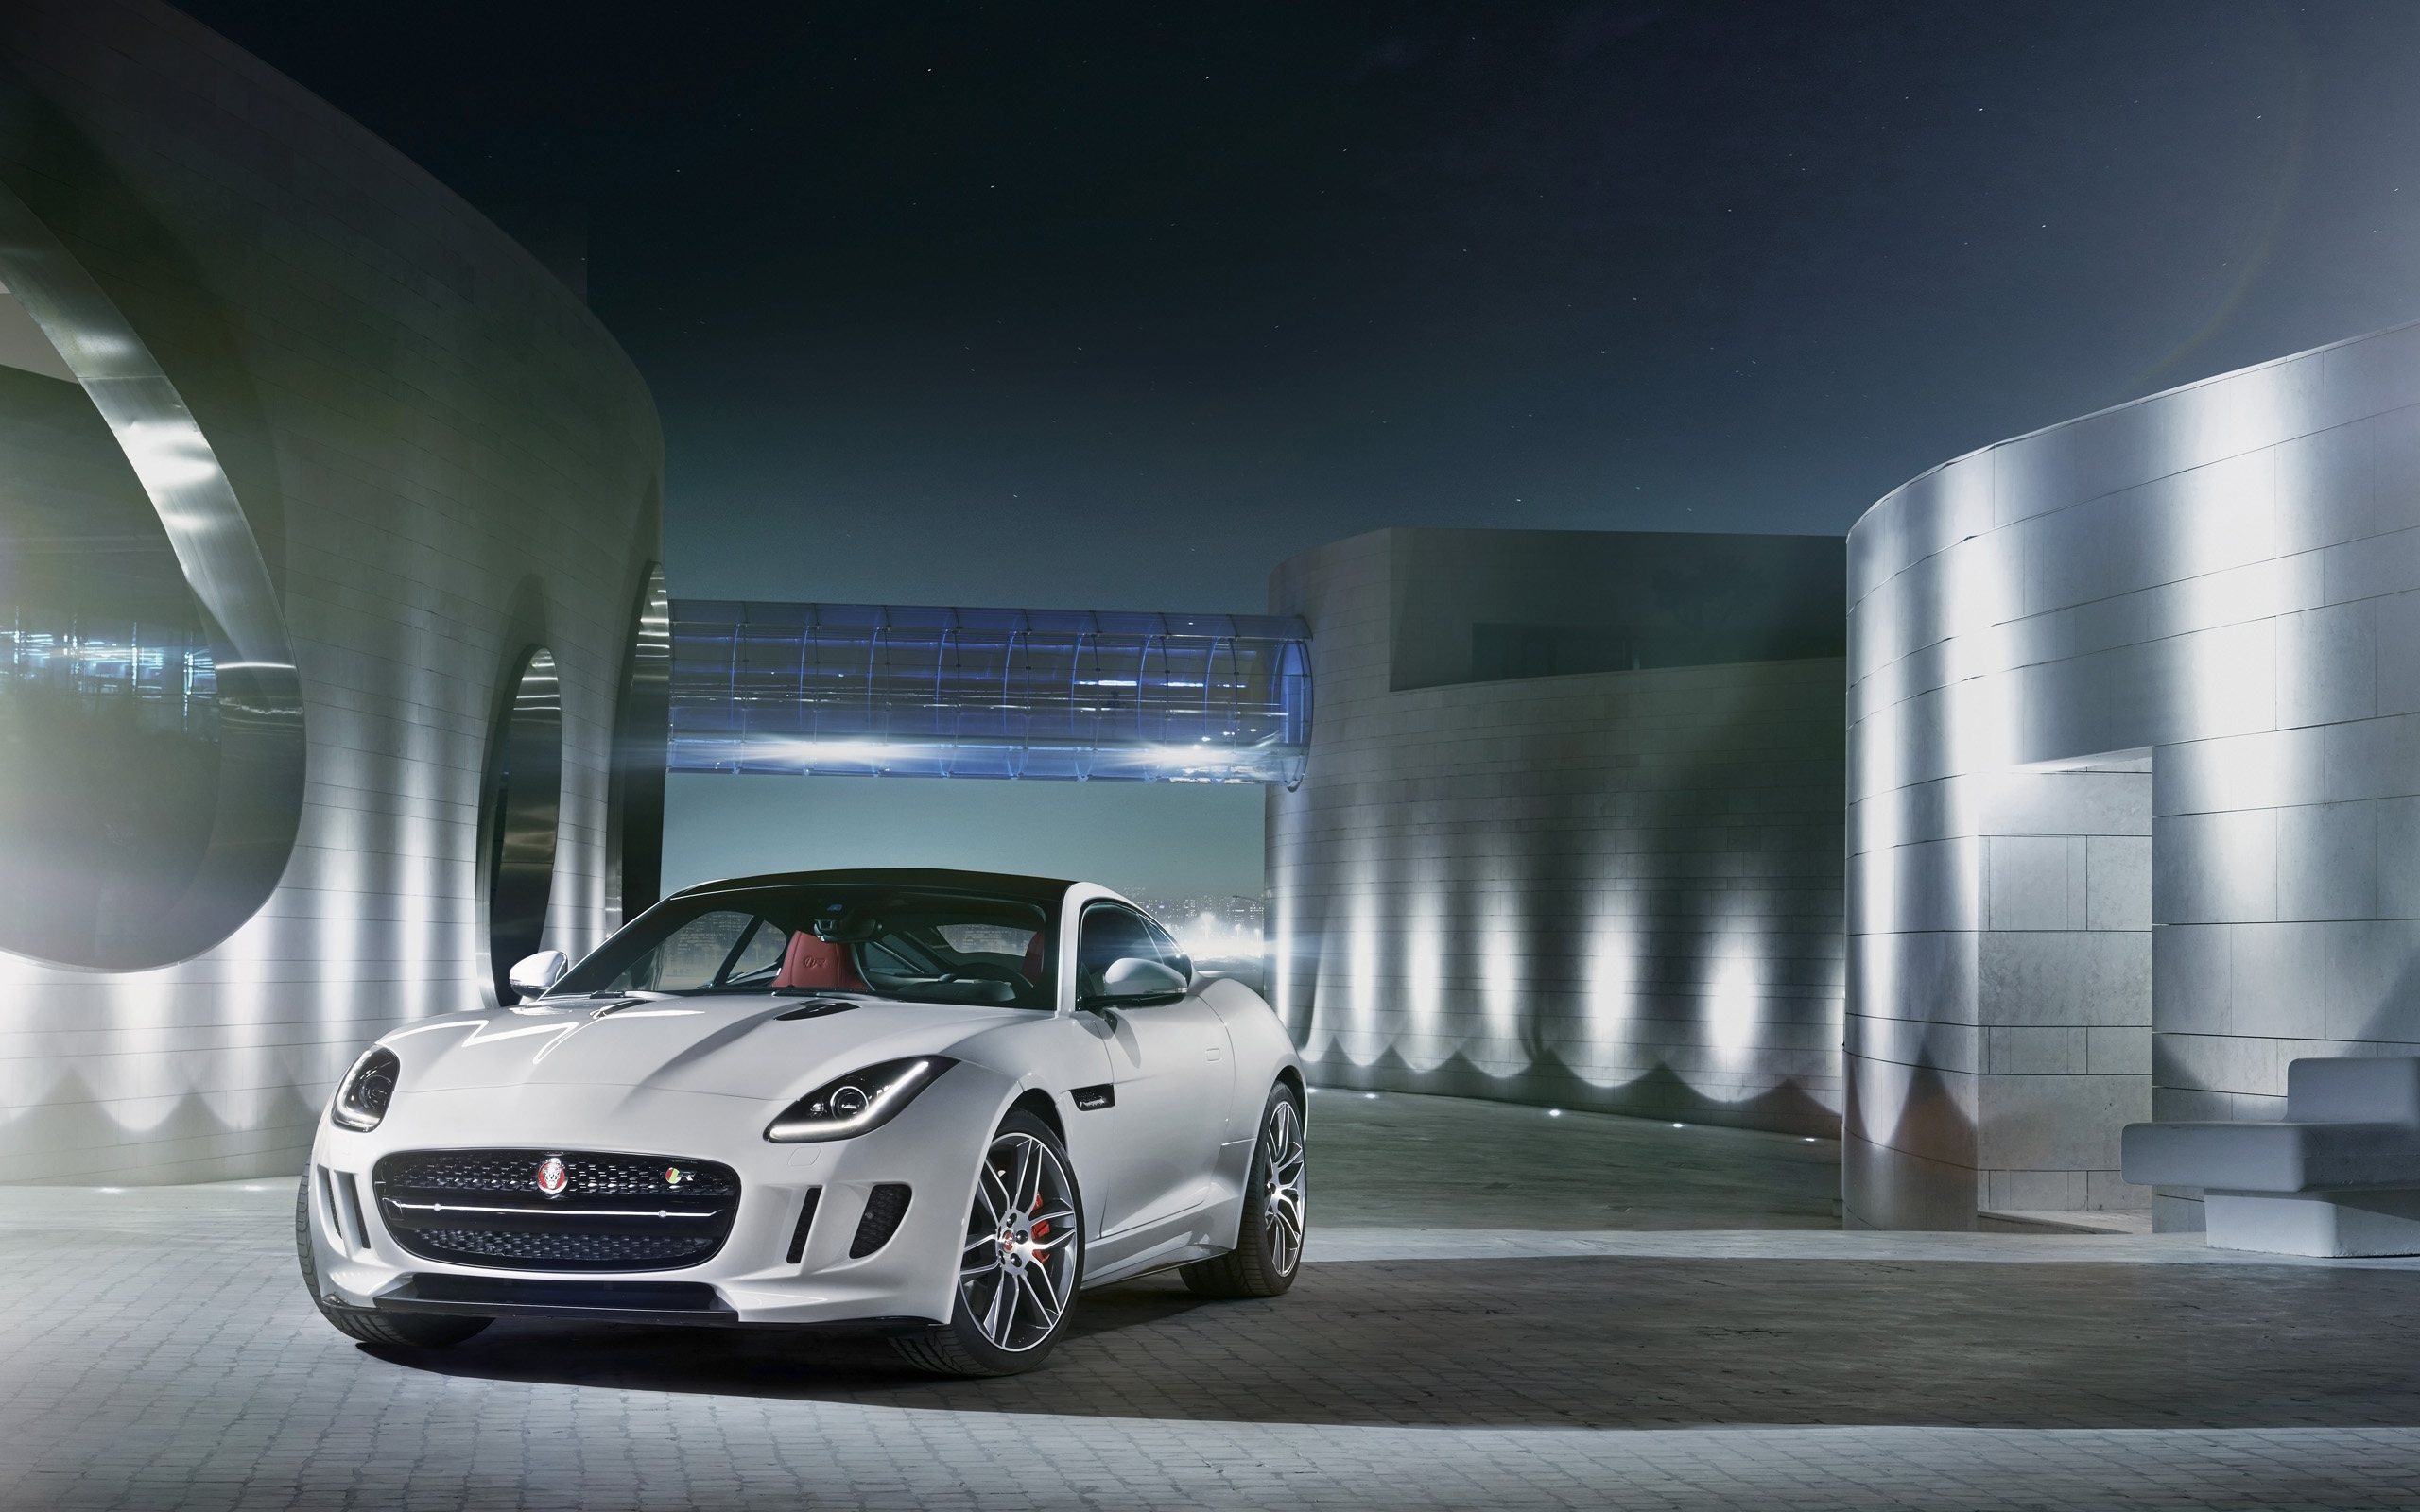 Jaguar F Type R Coupe 2014 Wallpapers HD Wallpapers 2560x1600